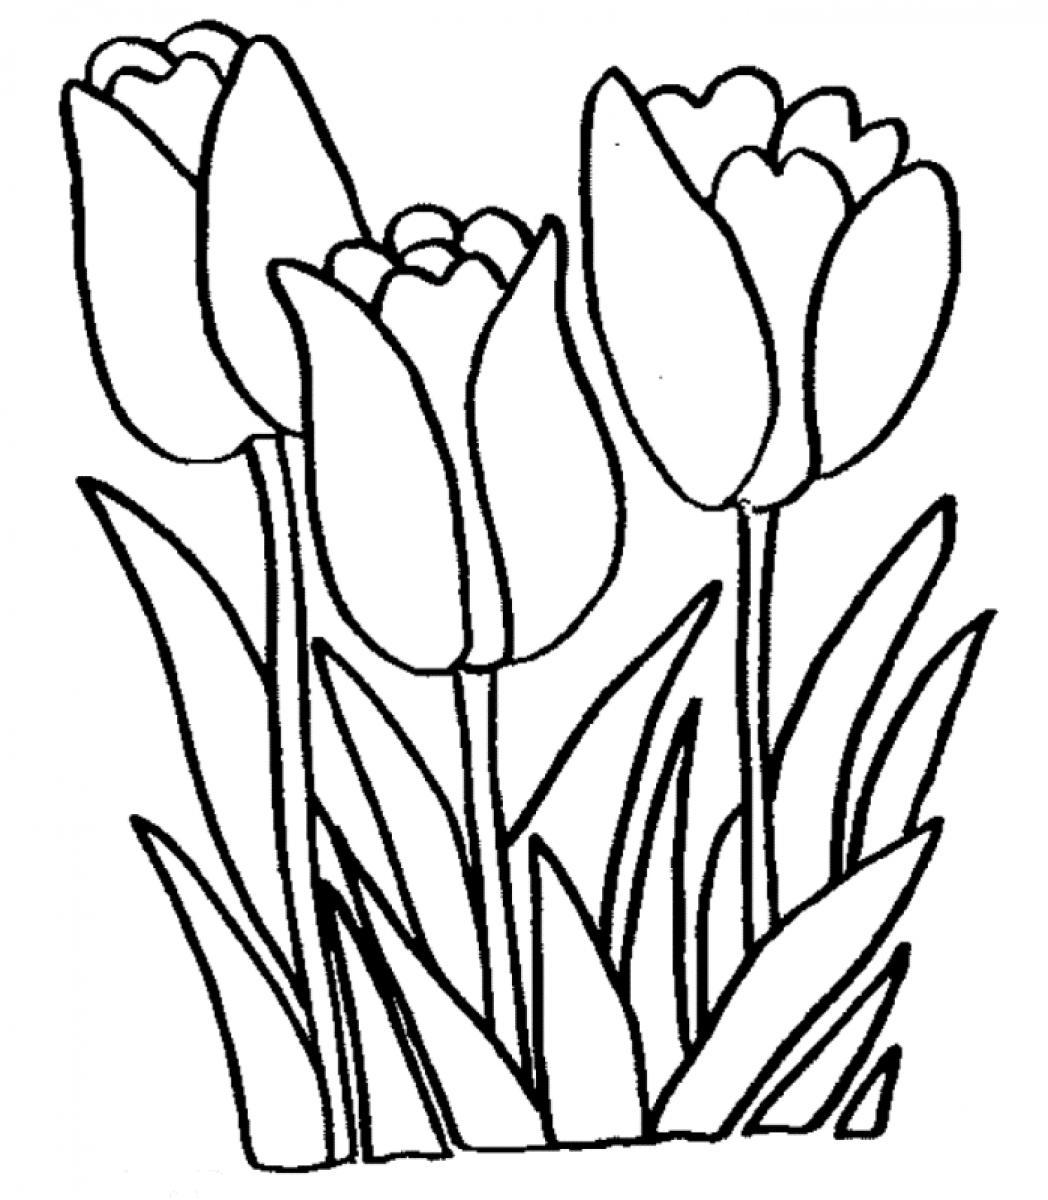 coloring tulip template free printable tulip coloring pages for kids template coloring tulip